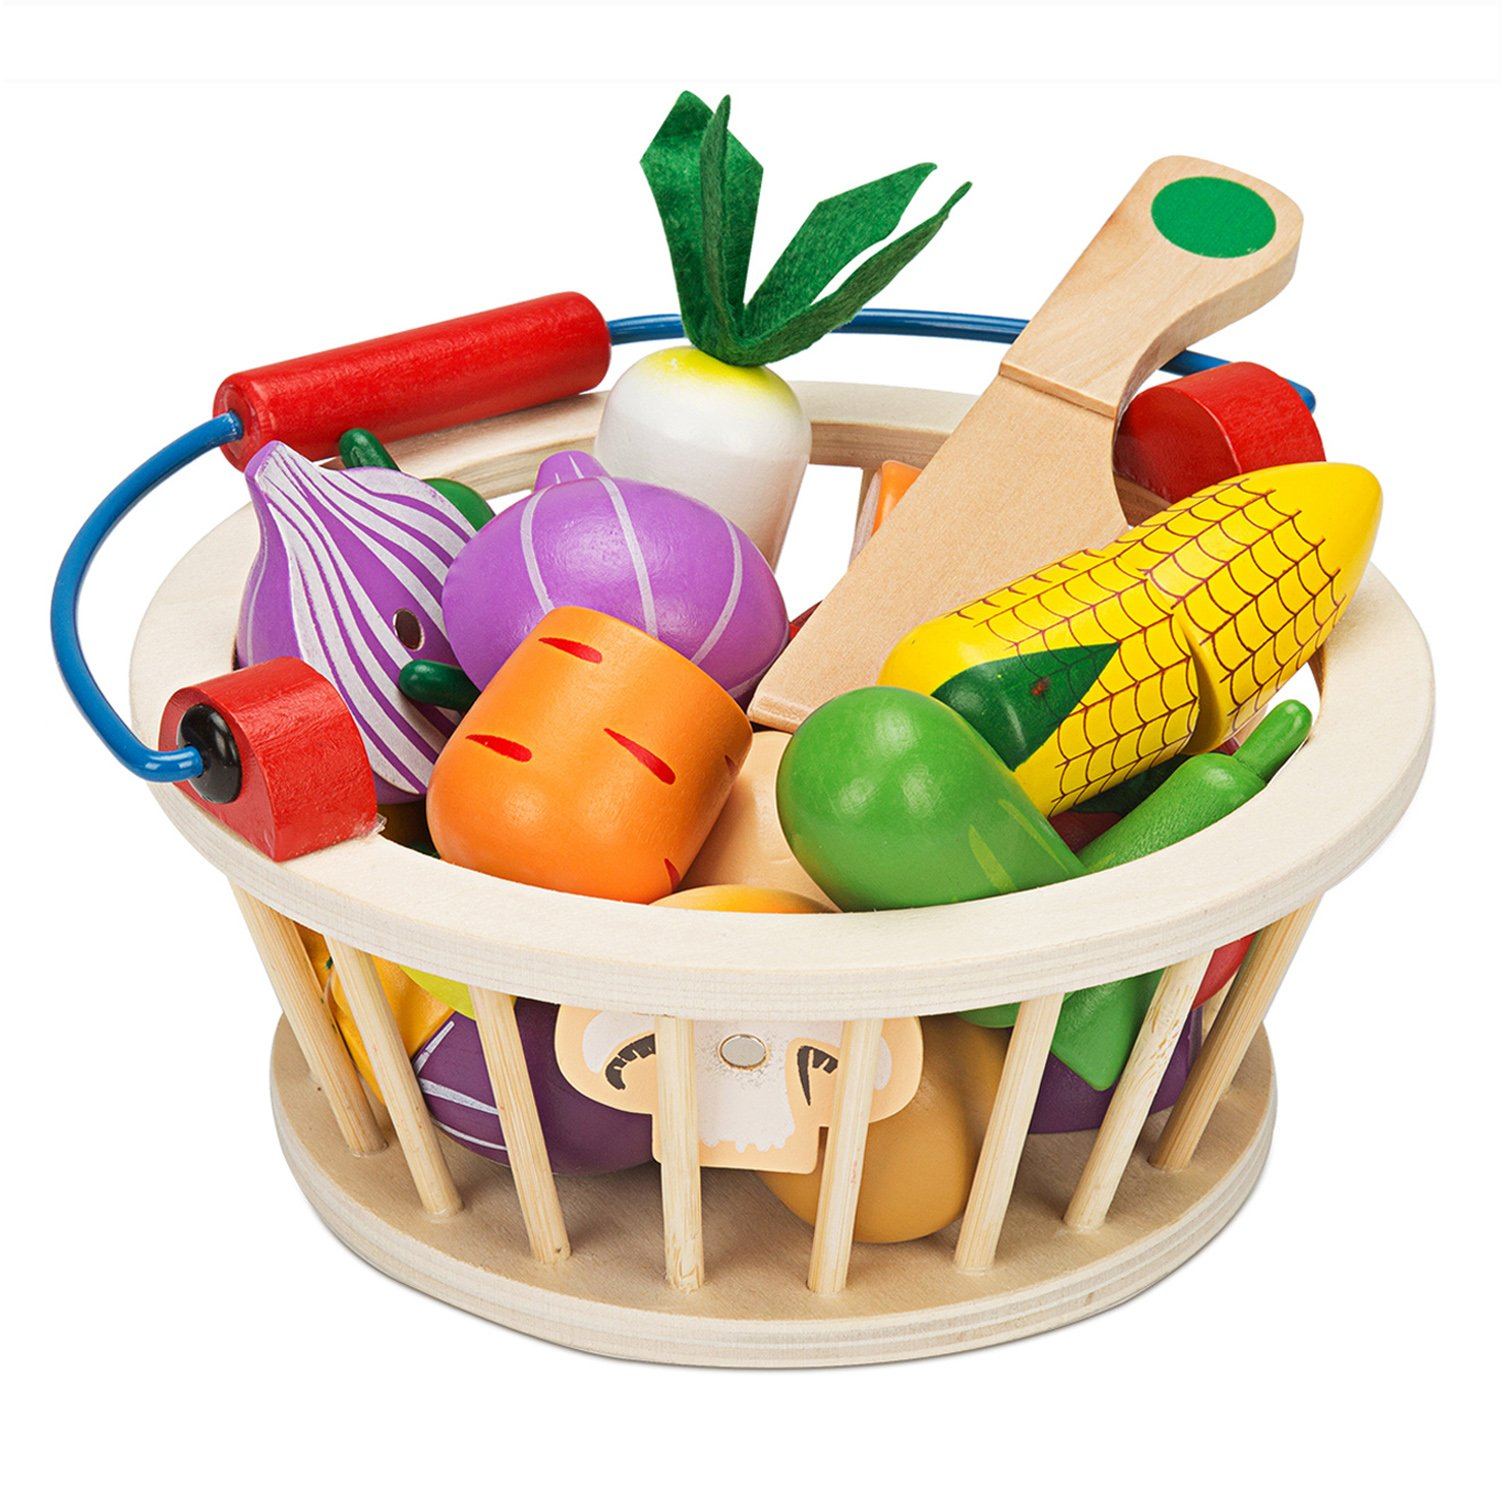 Victostar Magnetic Wooden Cutting Fruits Vegetables Food Play Toy Set with Basket for Kids (Vegetables) by Victostar